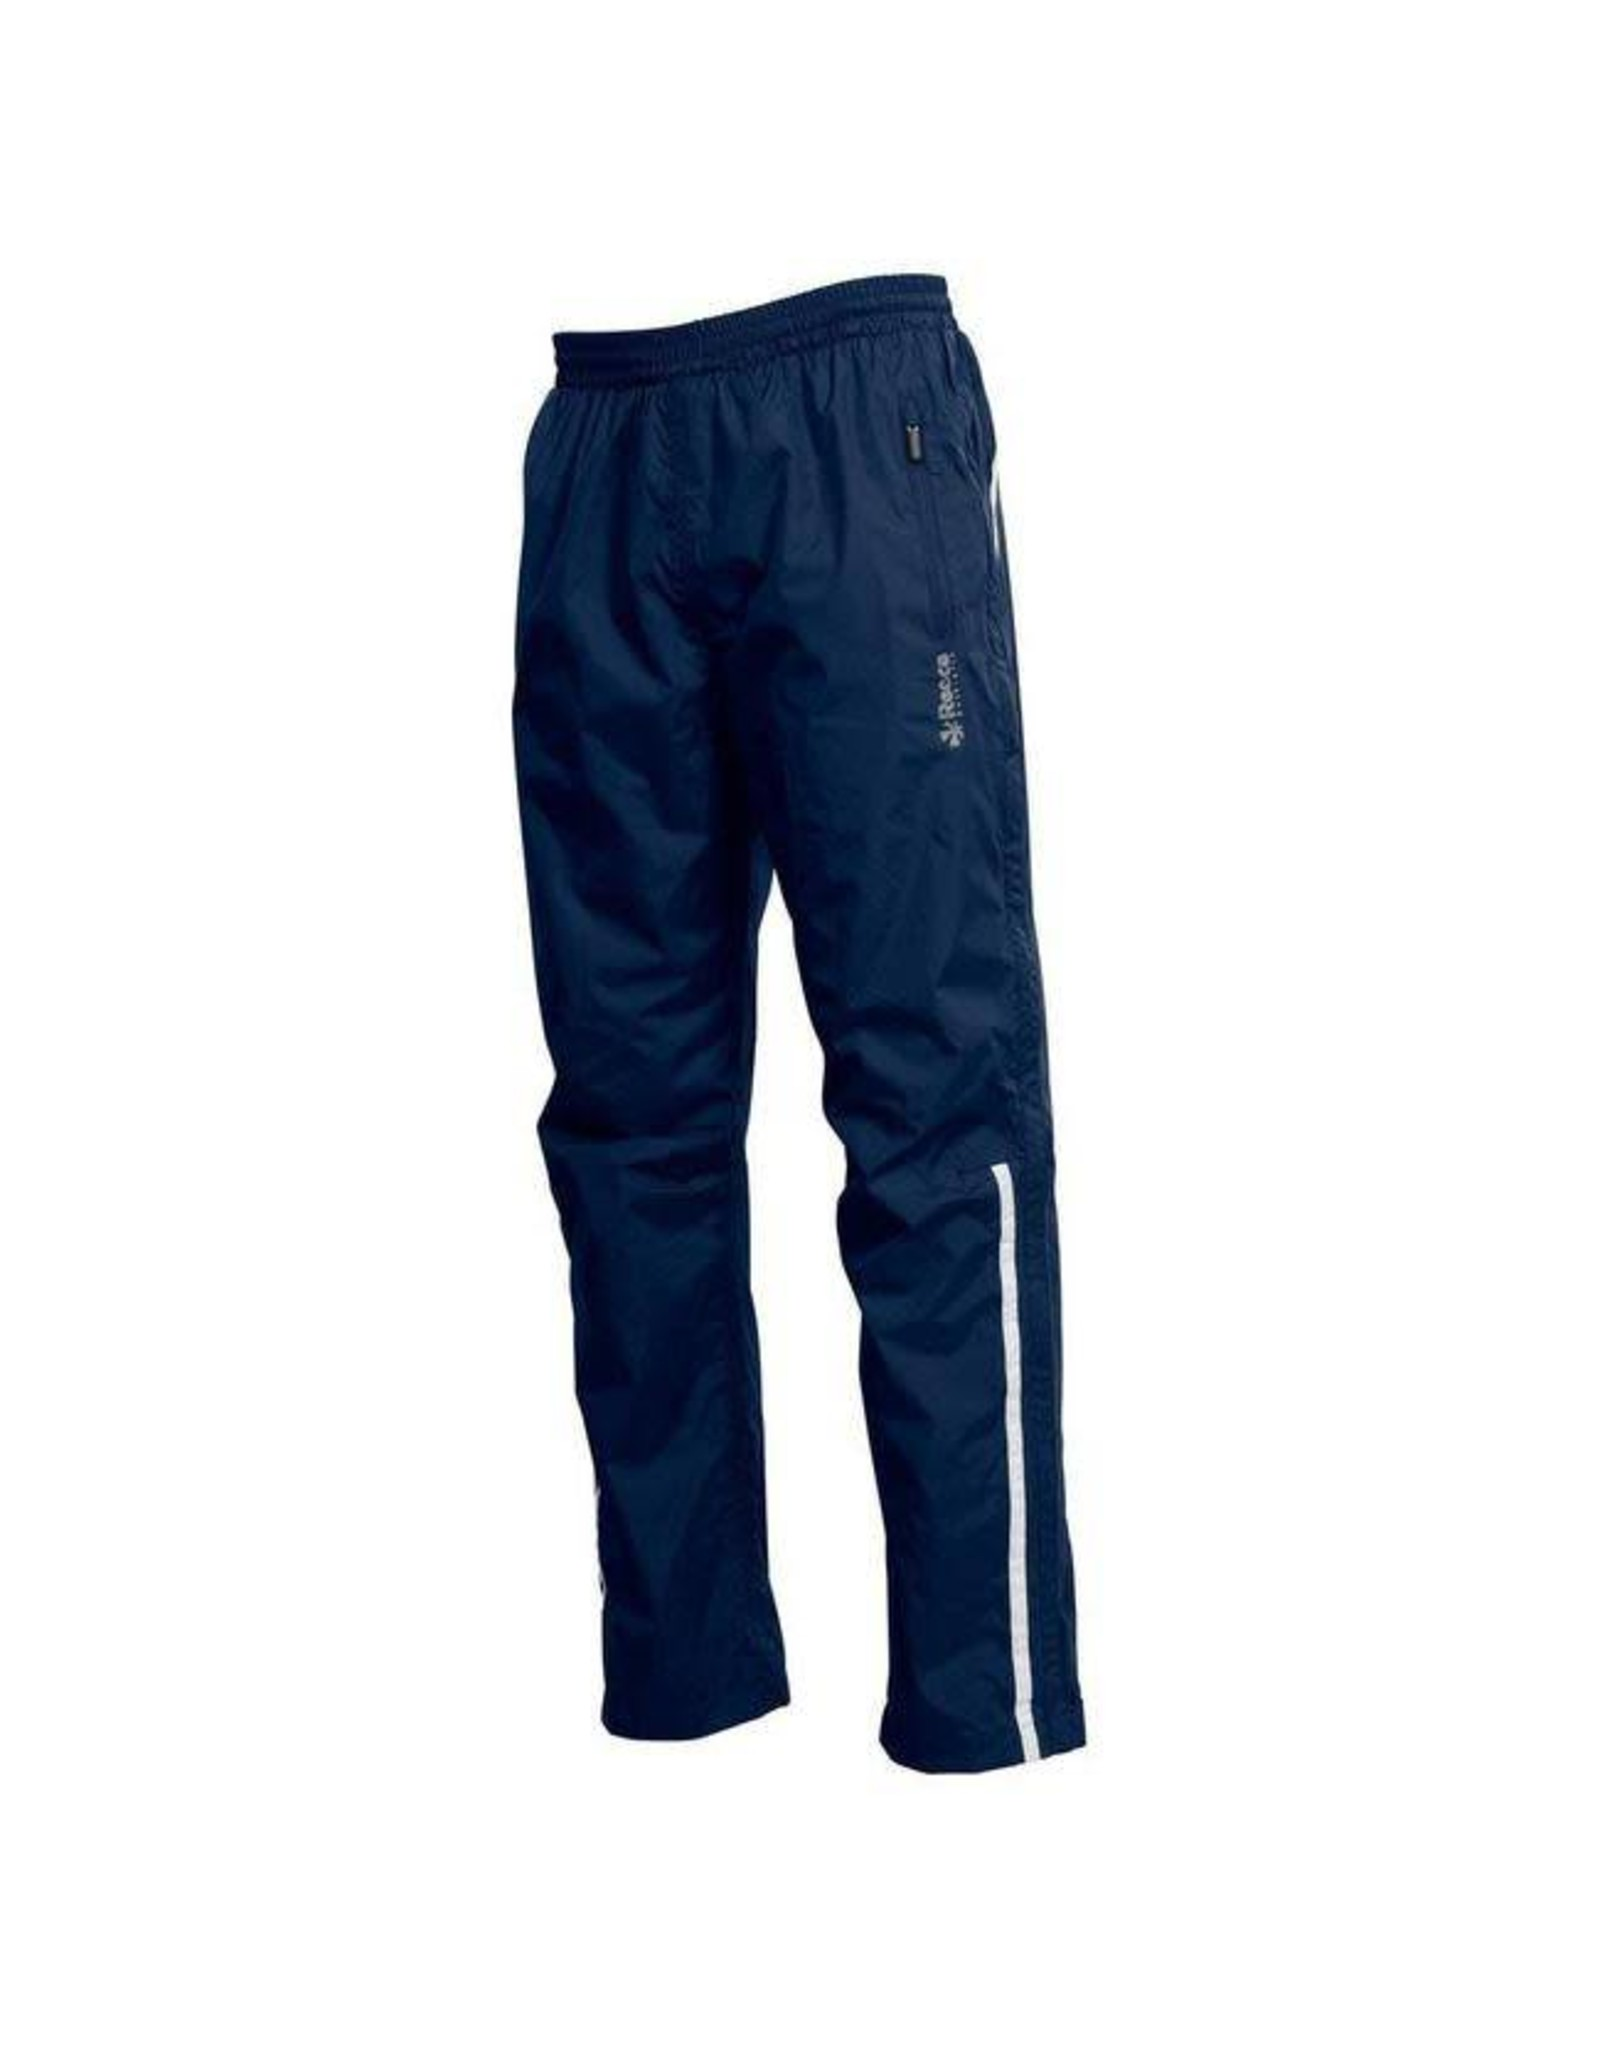 REECE BREATHABLE TECH PANTS UNISEX